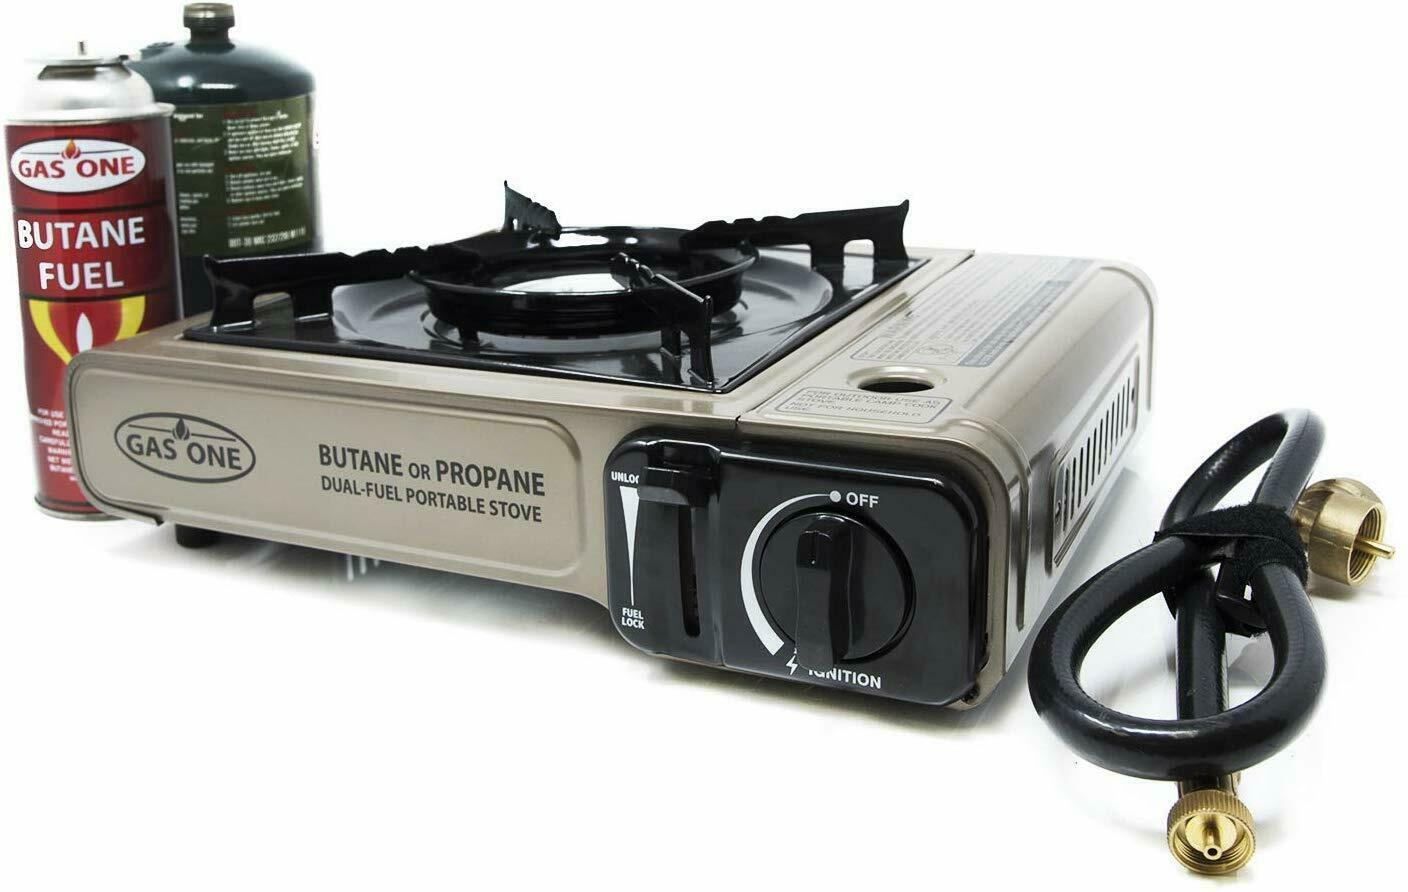 Dual Fuel Portable Propane Butane Camping Backpacking Gas St